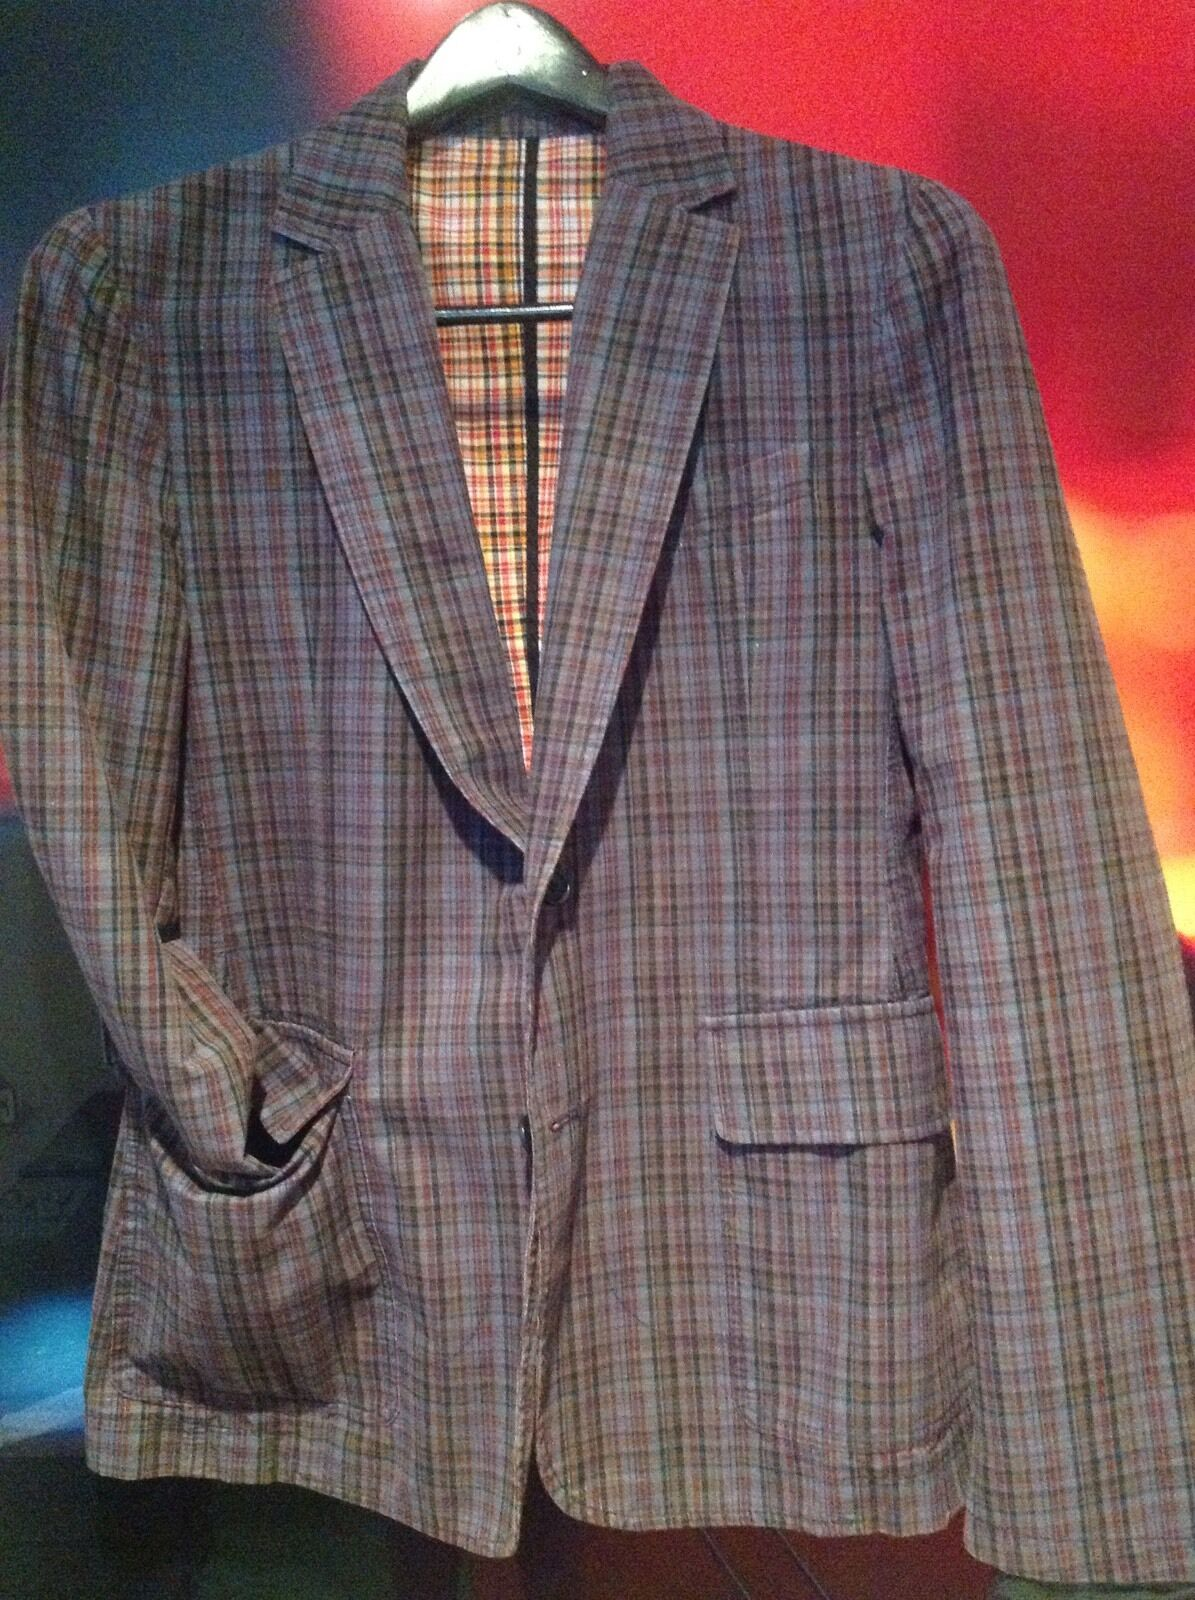 D & G -DOLCE & GABBANA - FITTED PLAID COTTON SPORT COAT - SIZE 50 EURO